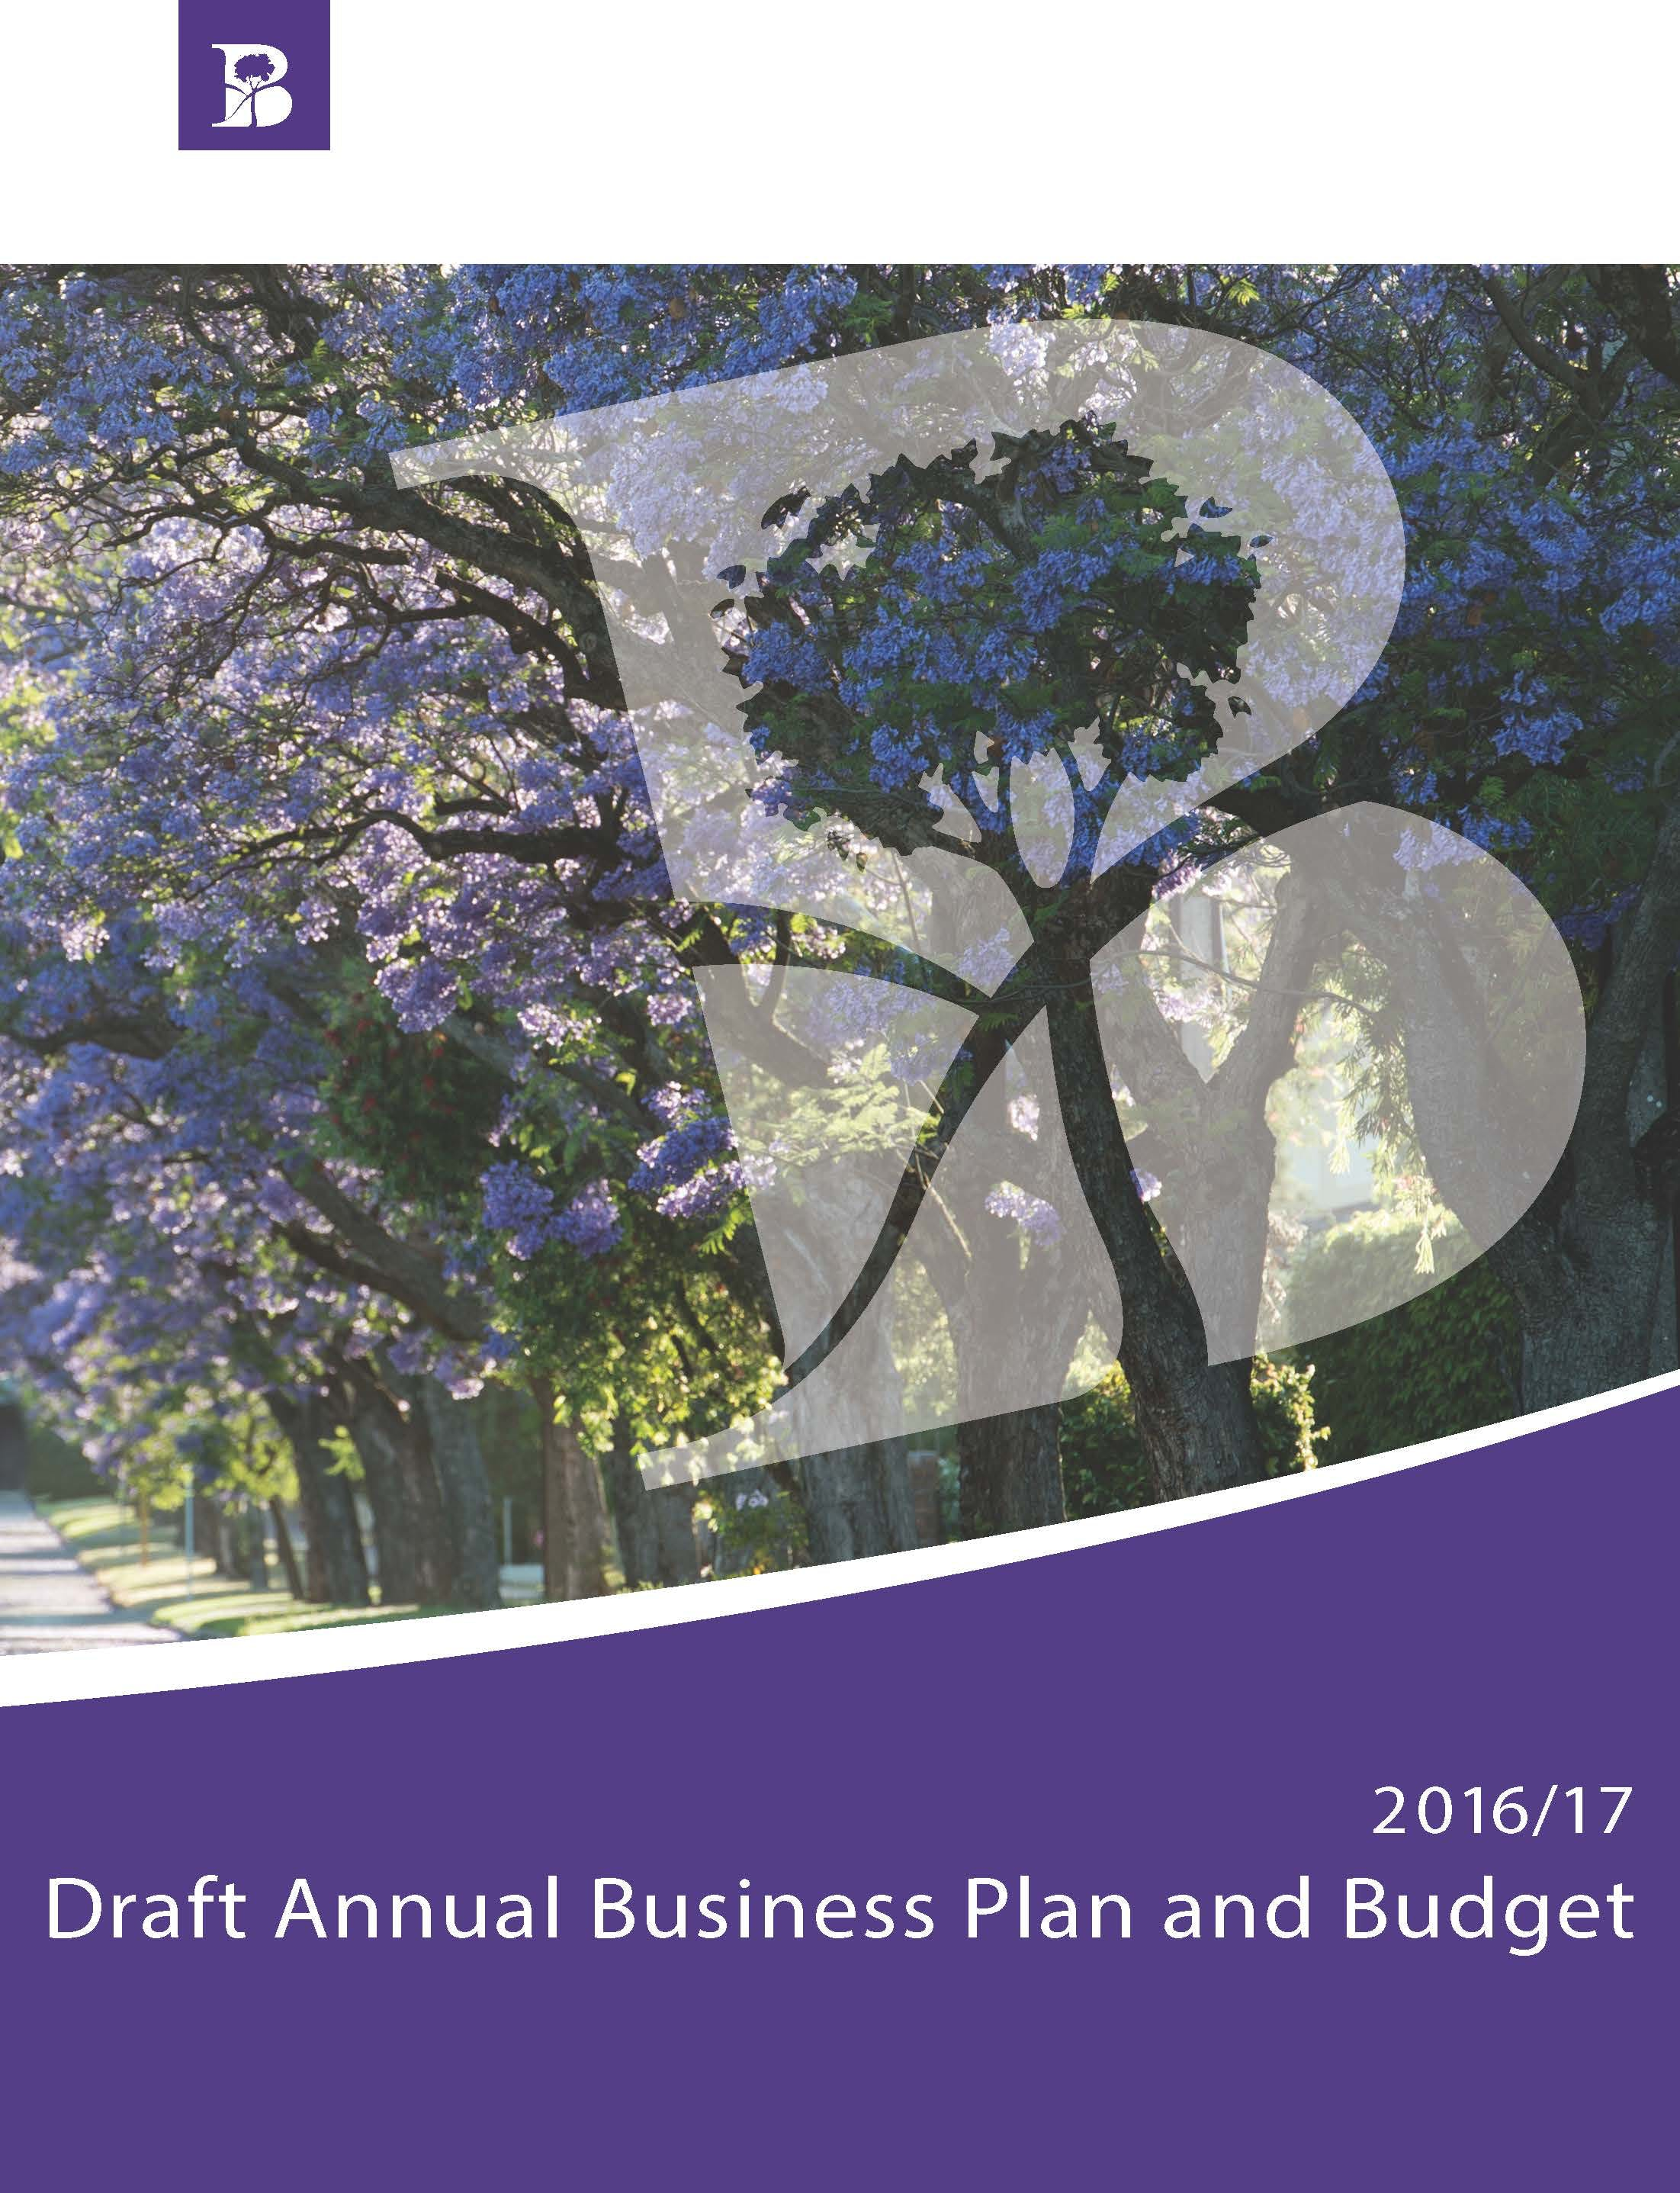 The 2016/17 Draft Business Plan and Budget is available online in the Document Library below. You can also view a copy at the Civic Centre Customer Desk.